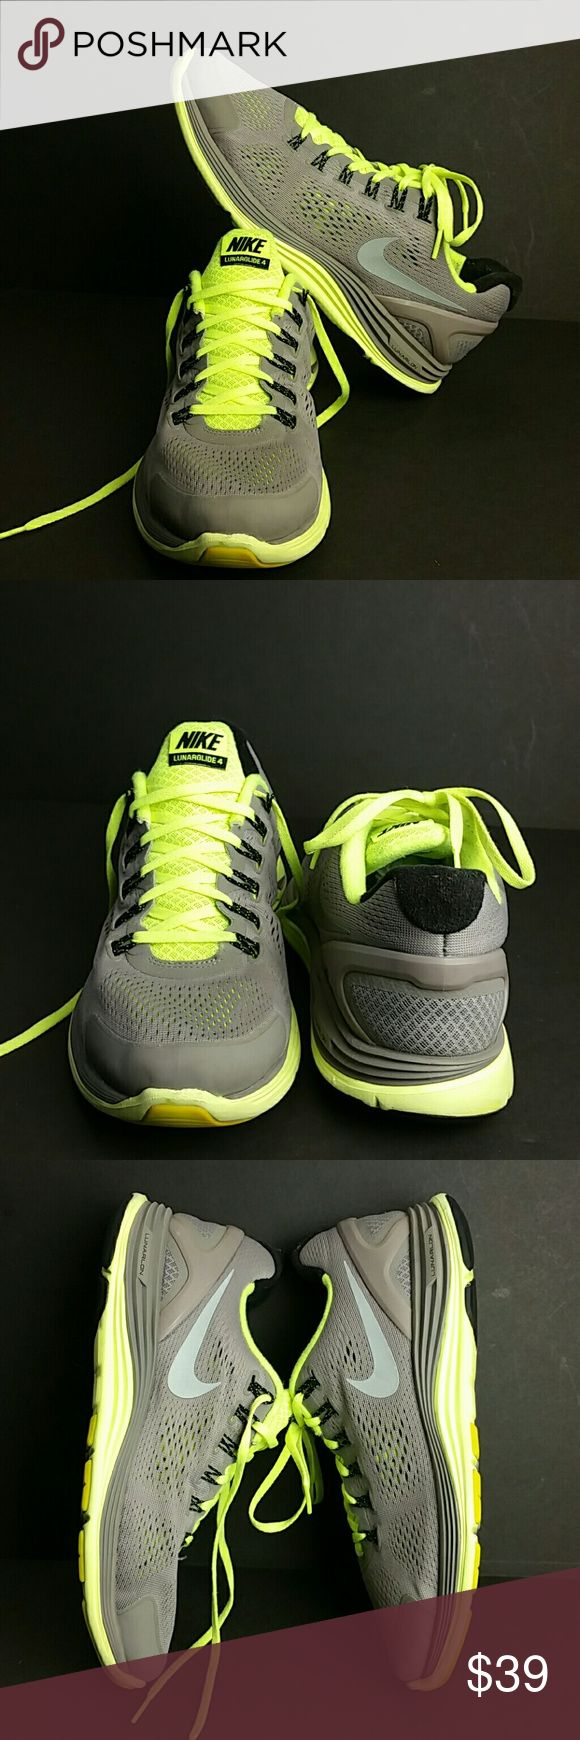 NIKE LUNARGLIDE 4 IV MEN'S SHOES IN GOOD CONDITION   SKE # KU5 NIKE Shoes Athletic Shoes